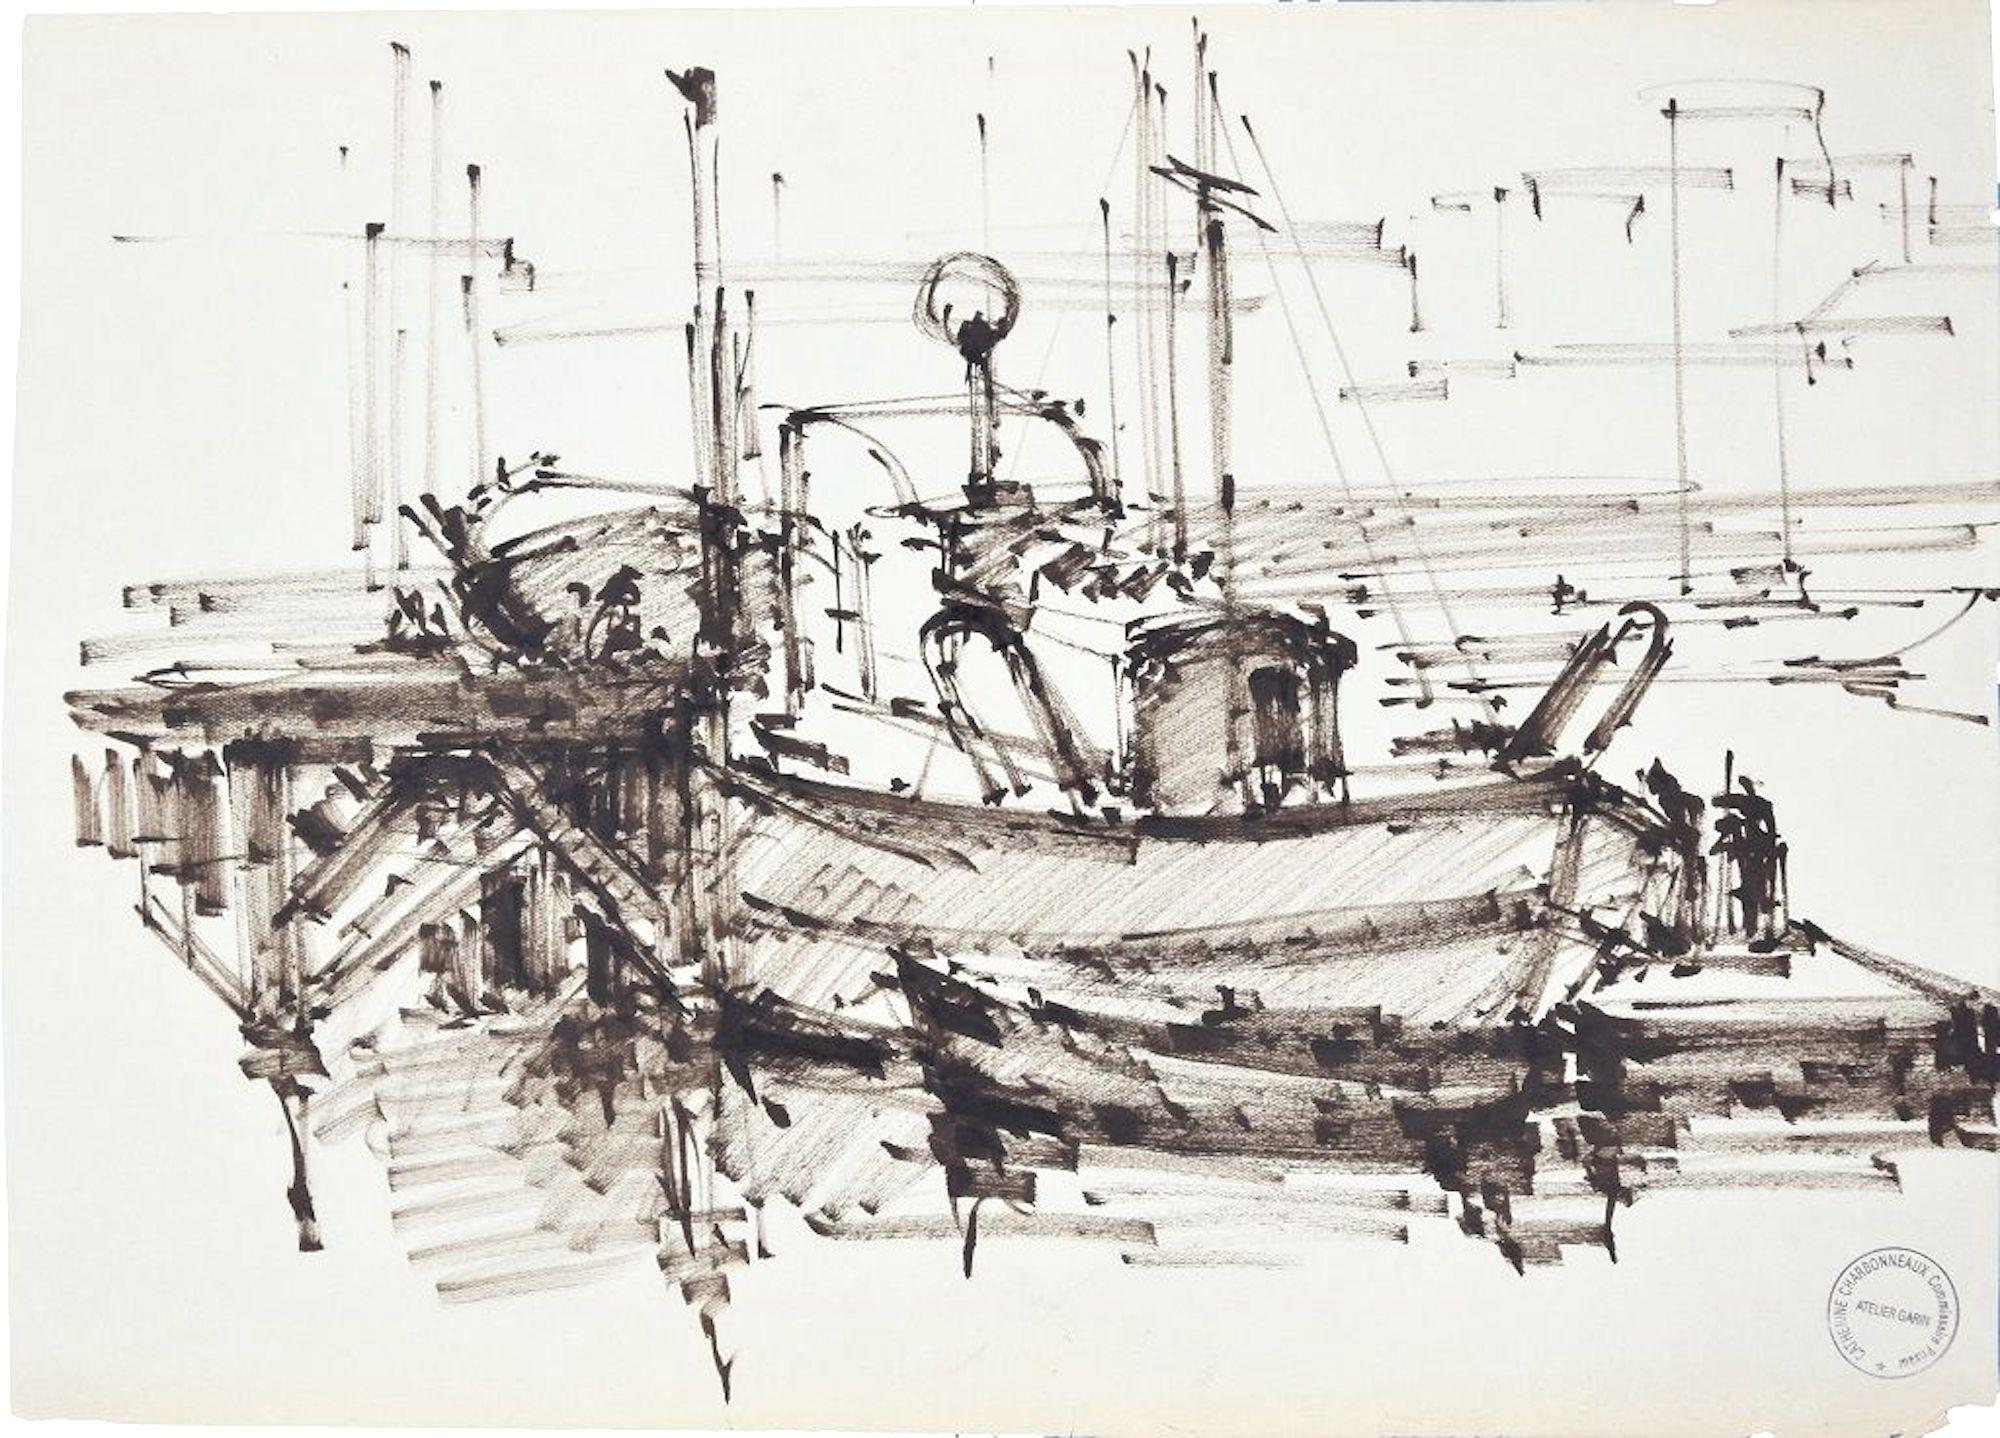 The Ship - Original Tempera on Paper by Paul Garin - 1950s